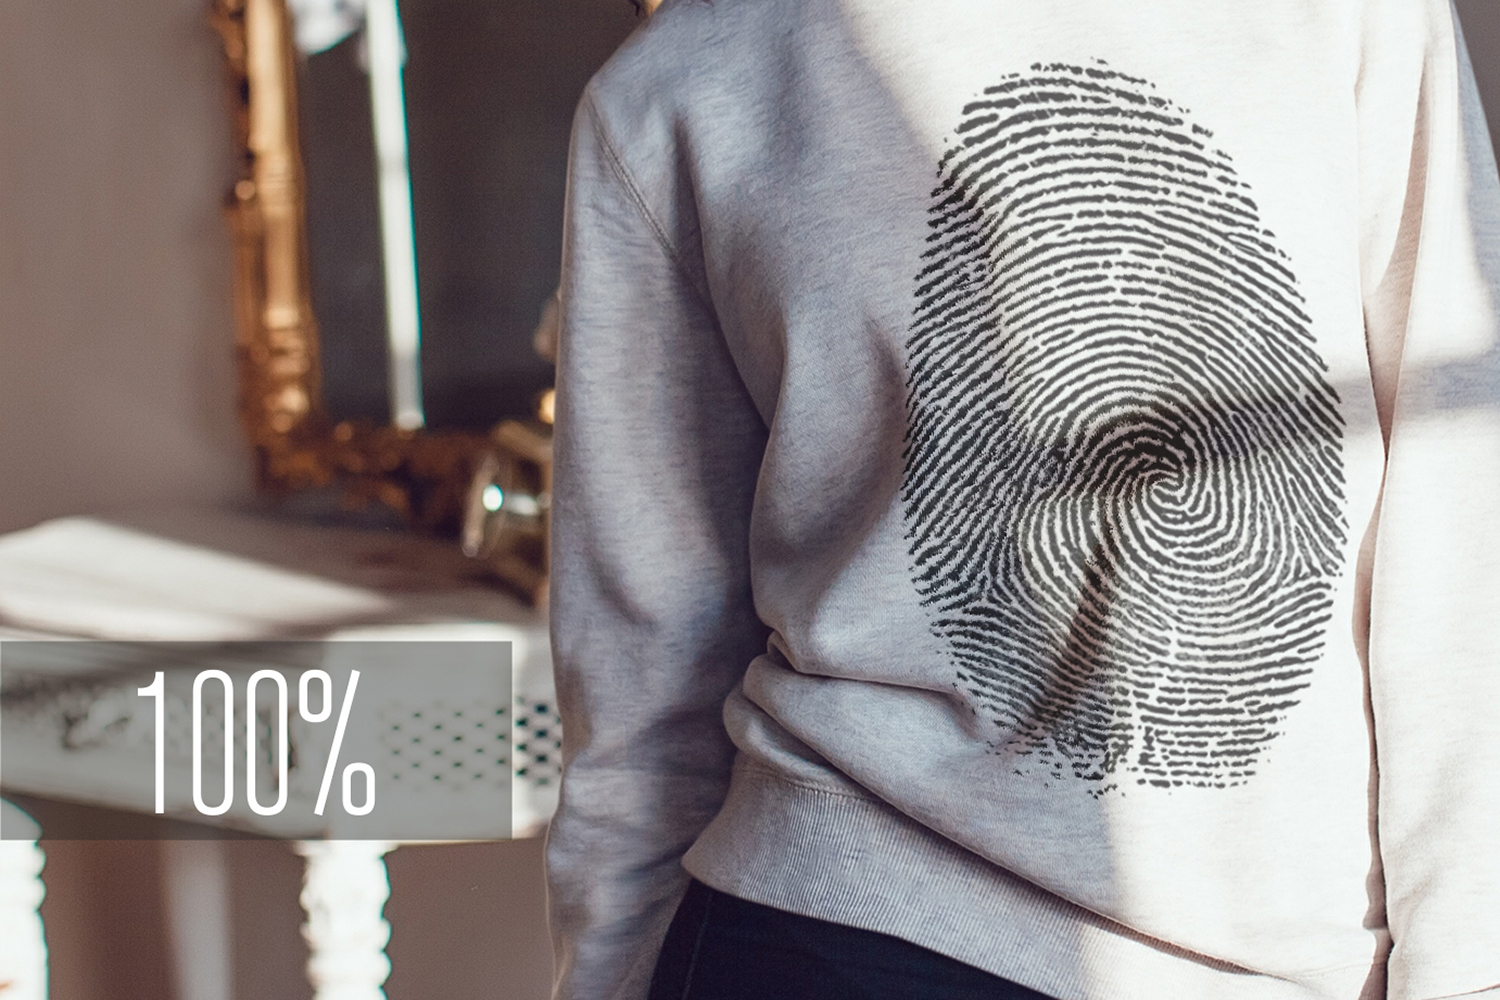 Sweatshirt Mock-Up Vol.2 2017 example image 3